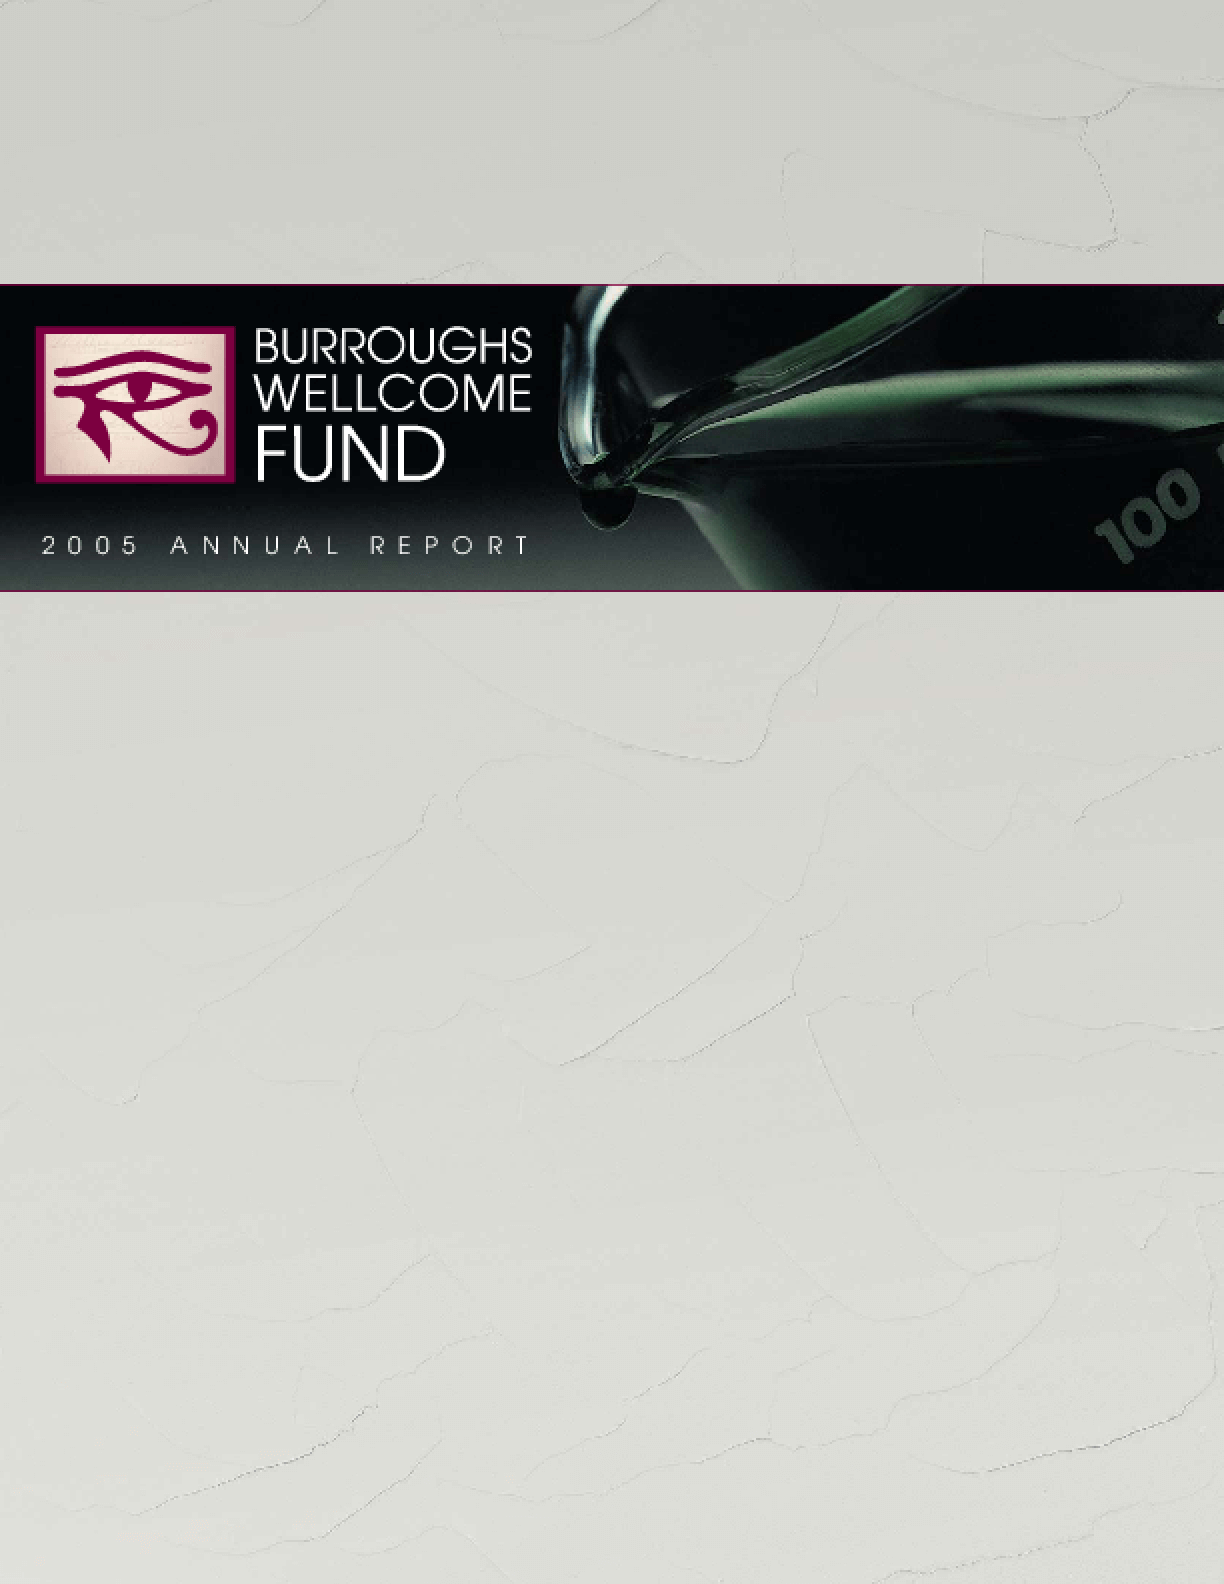 Burroughs Wellcome Fund - 2005 Annual Report